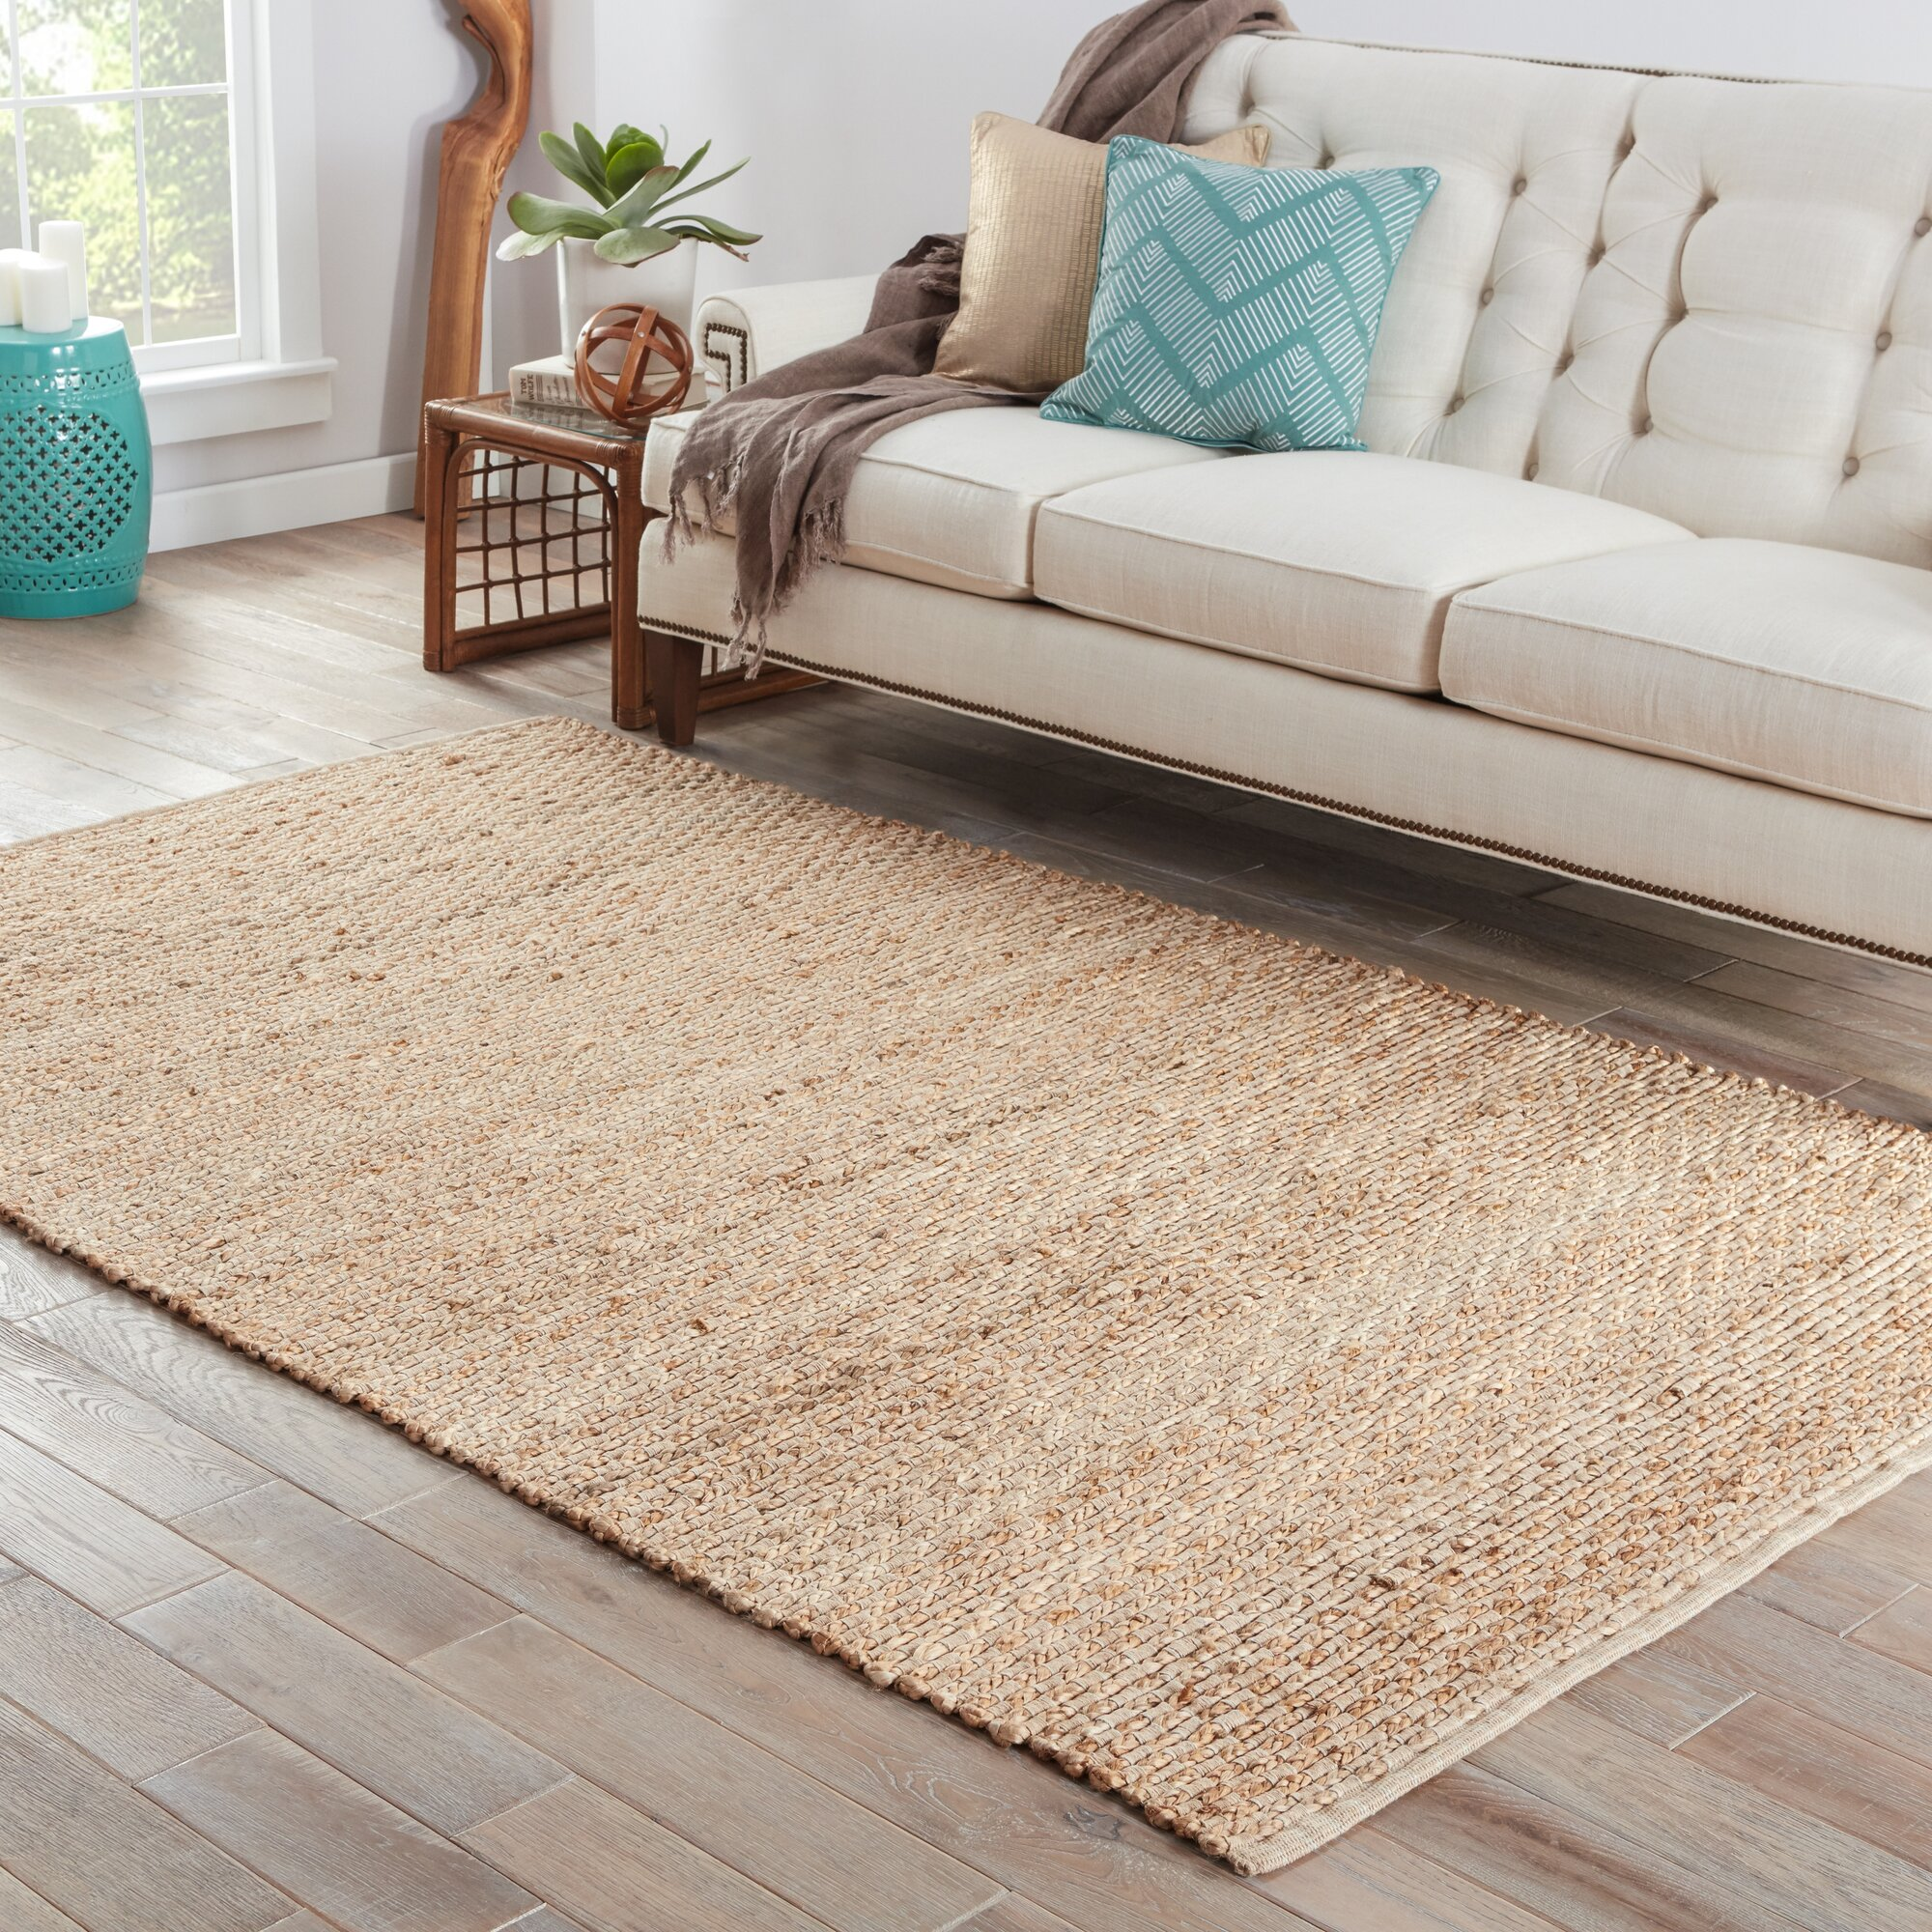 colour braid jute runners area chunky rug image mats up weave free fiber mat natural close rugs